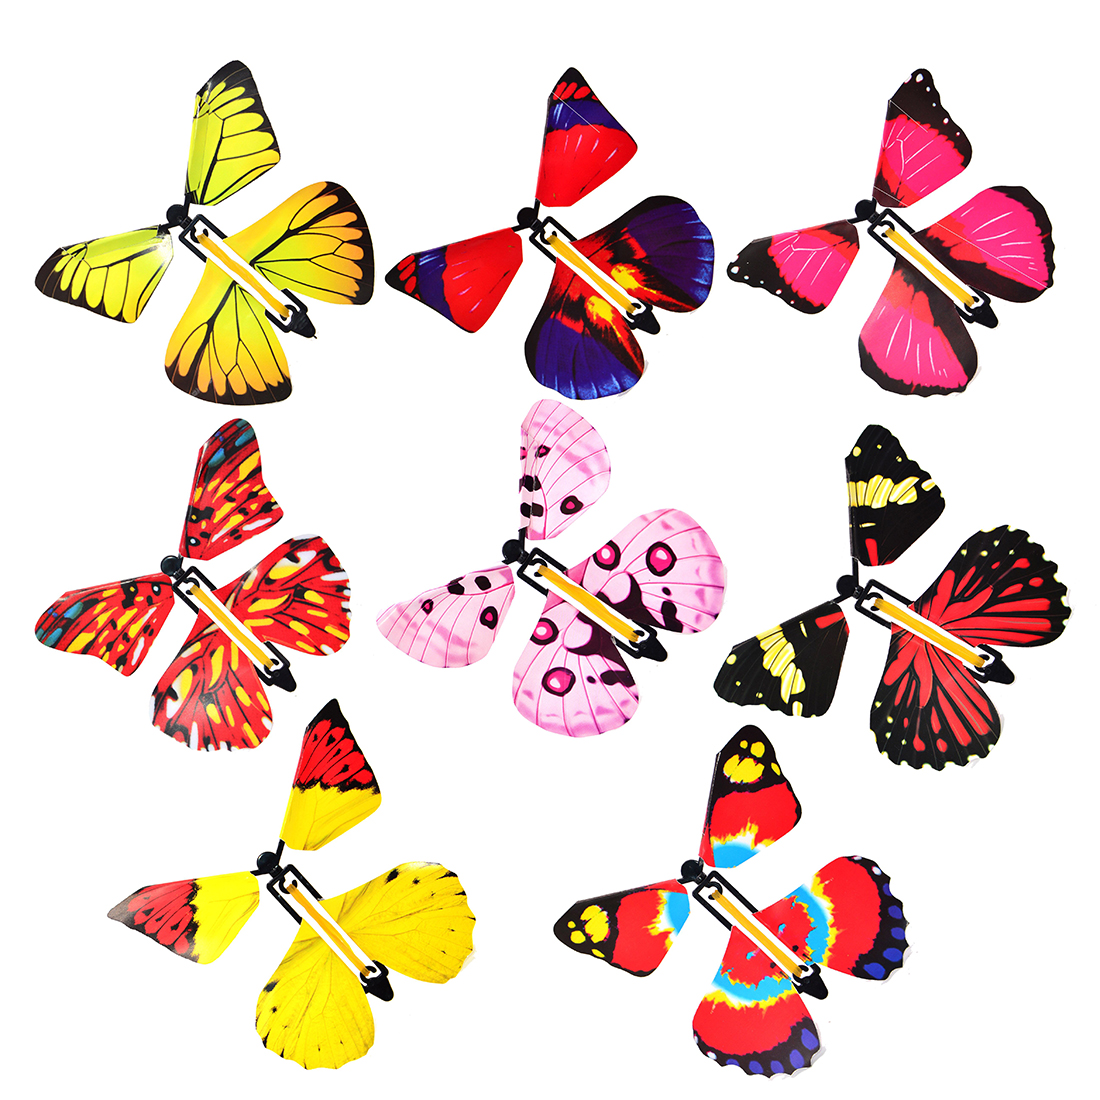 Creative Toys Gift Flying Magic Prop Butterfly Toy Trick Flying Butterfly